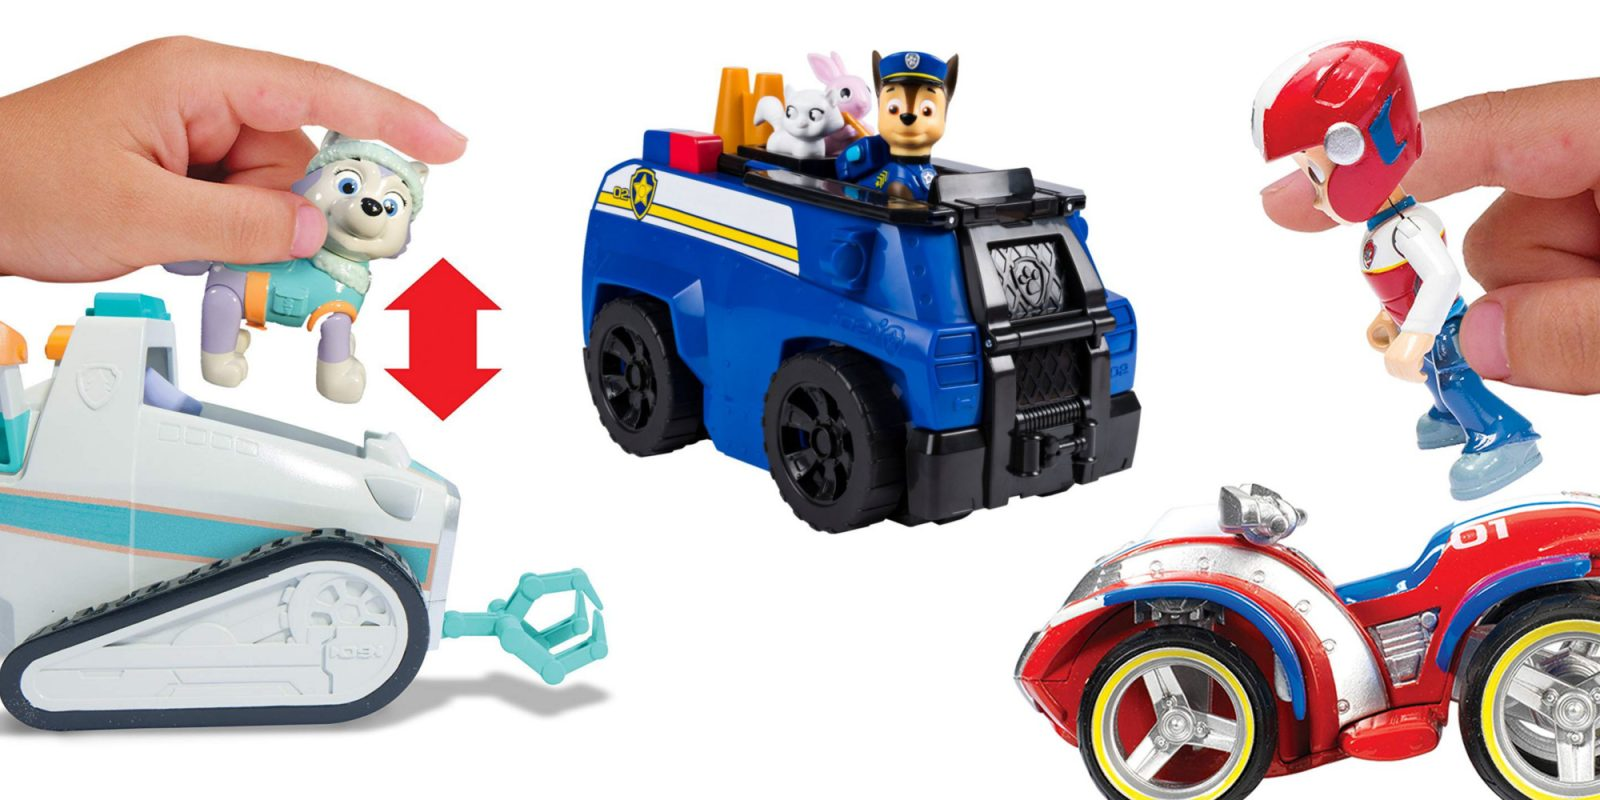 PAW Patrol kids' toy sets from $5: Everest's Rescue, ATV, VTech Driver, more